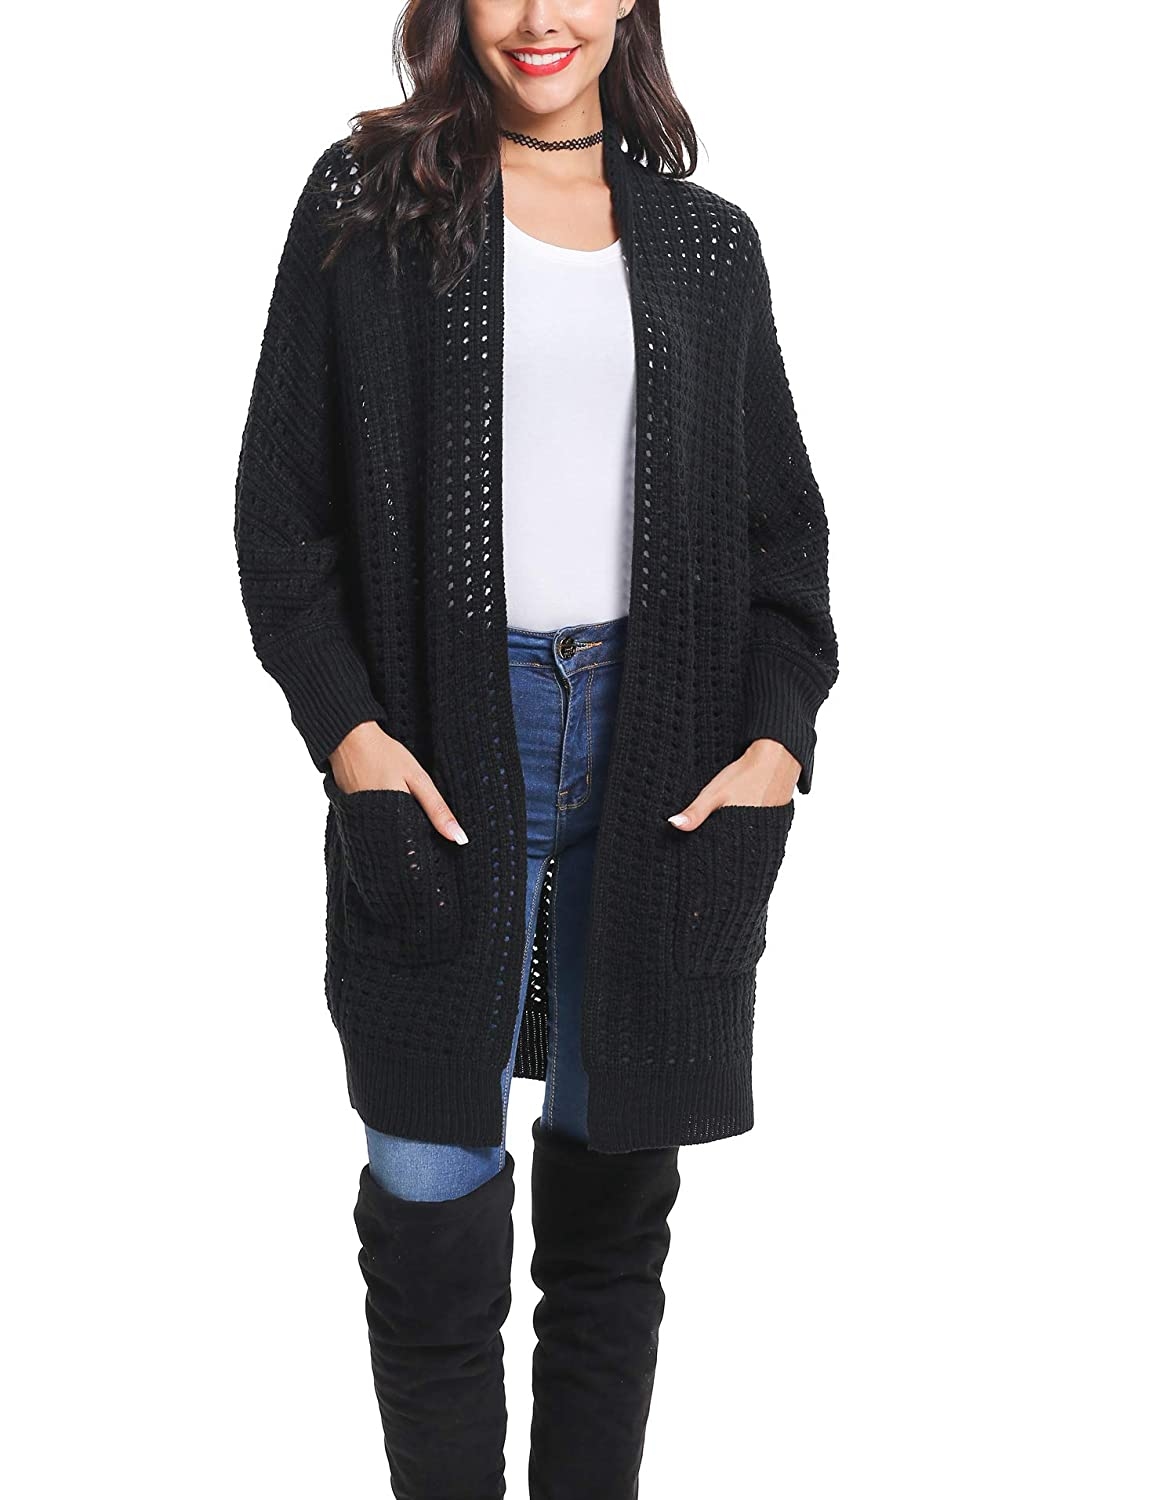 Black LYHNMW Women's Batwing Cardigan Sweater Long Sleeve Chunky Knit Cardigans Loose Casual Outerwear